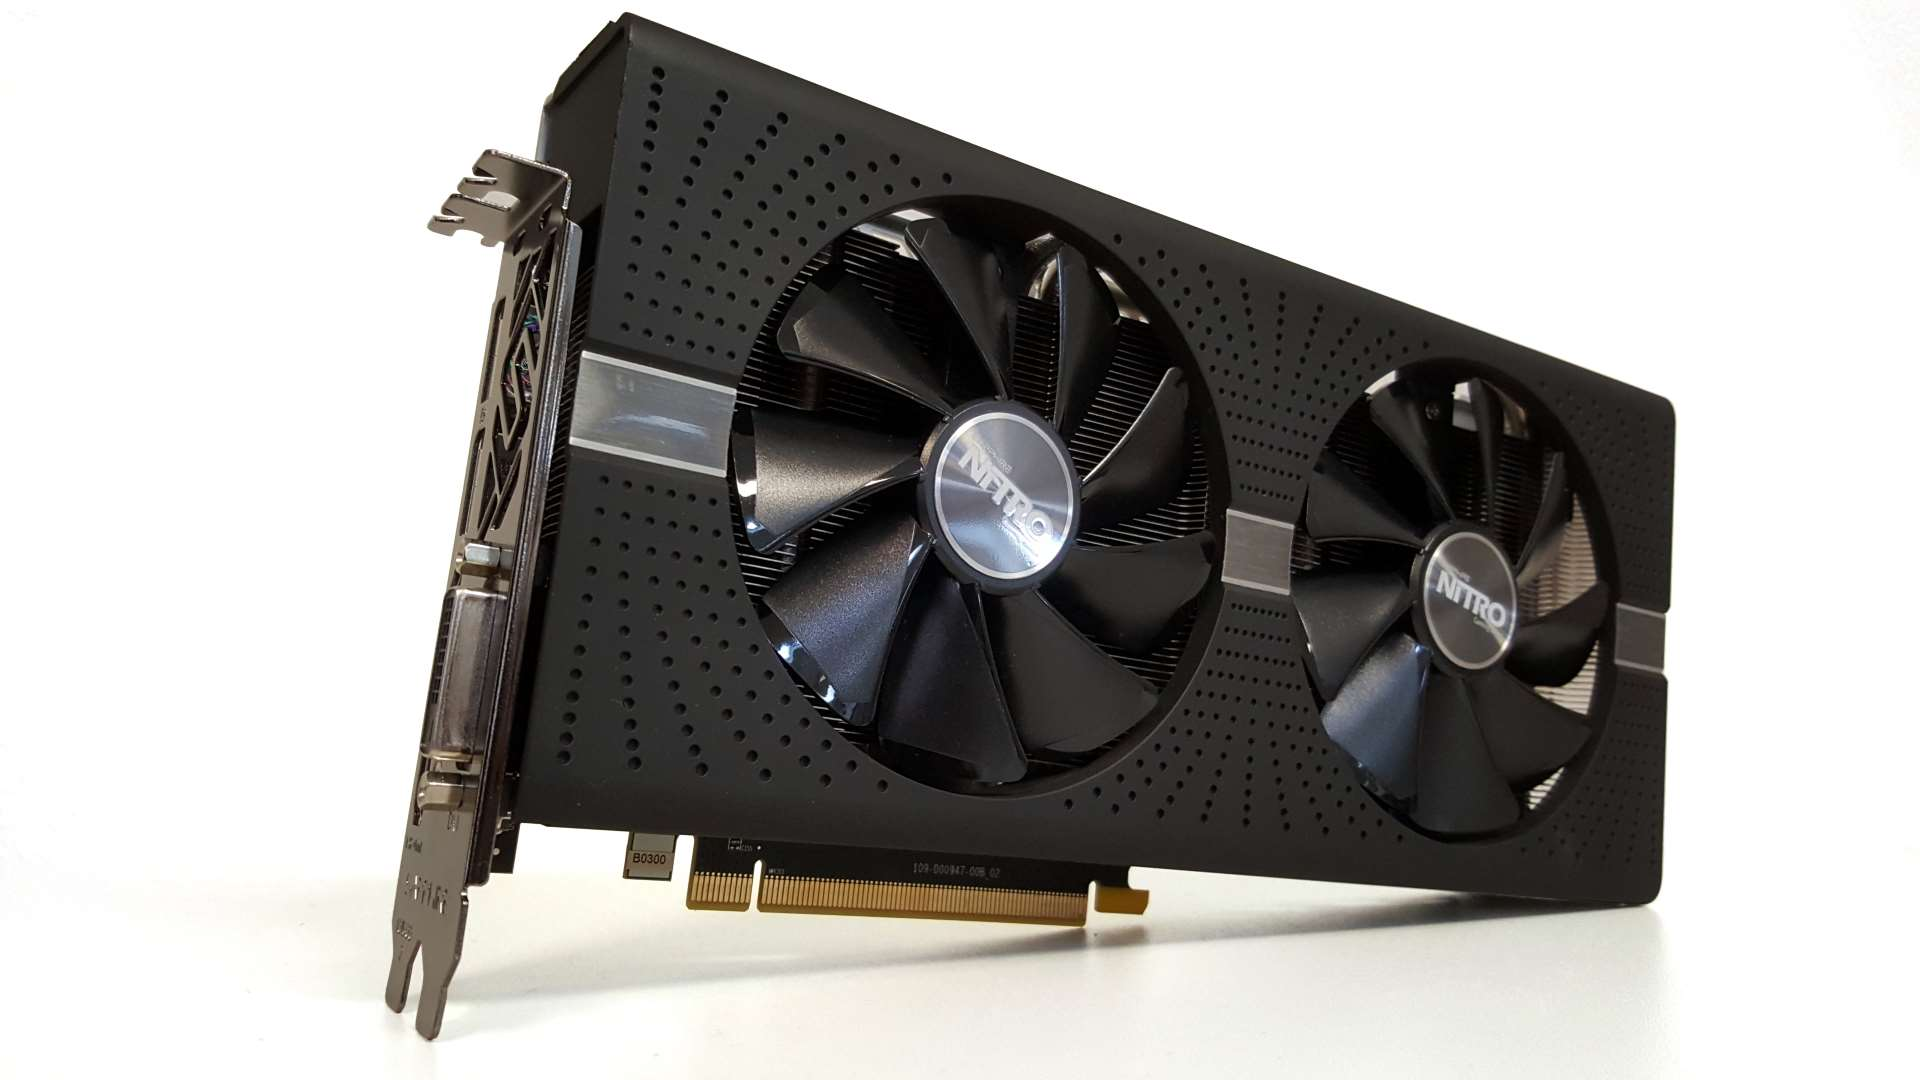 Amd Rx 570 4gb Review The Best Budget Graphics Card Around Today Pcgamesn